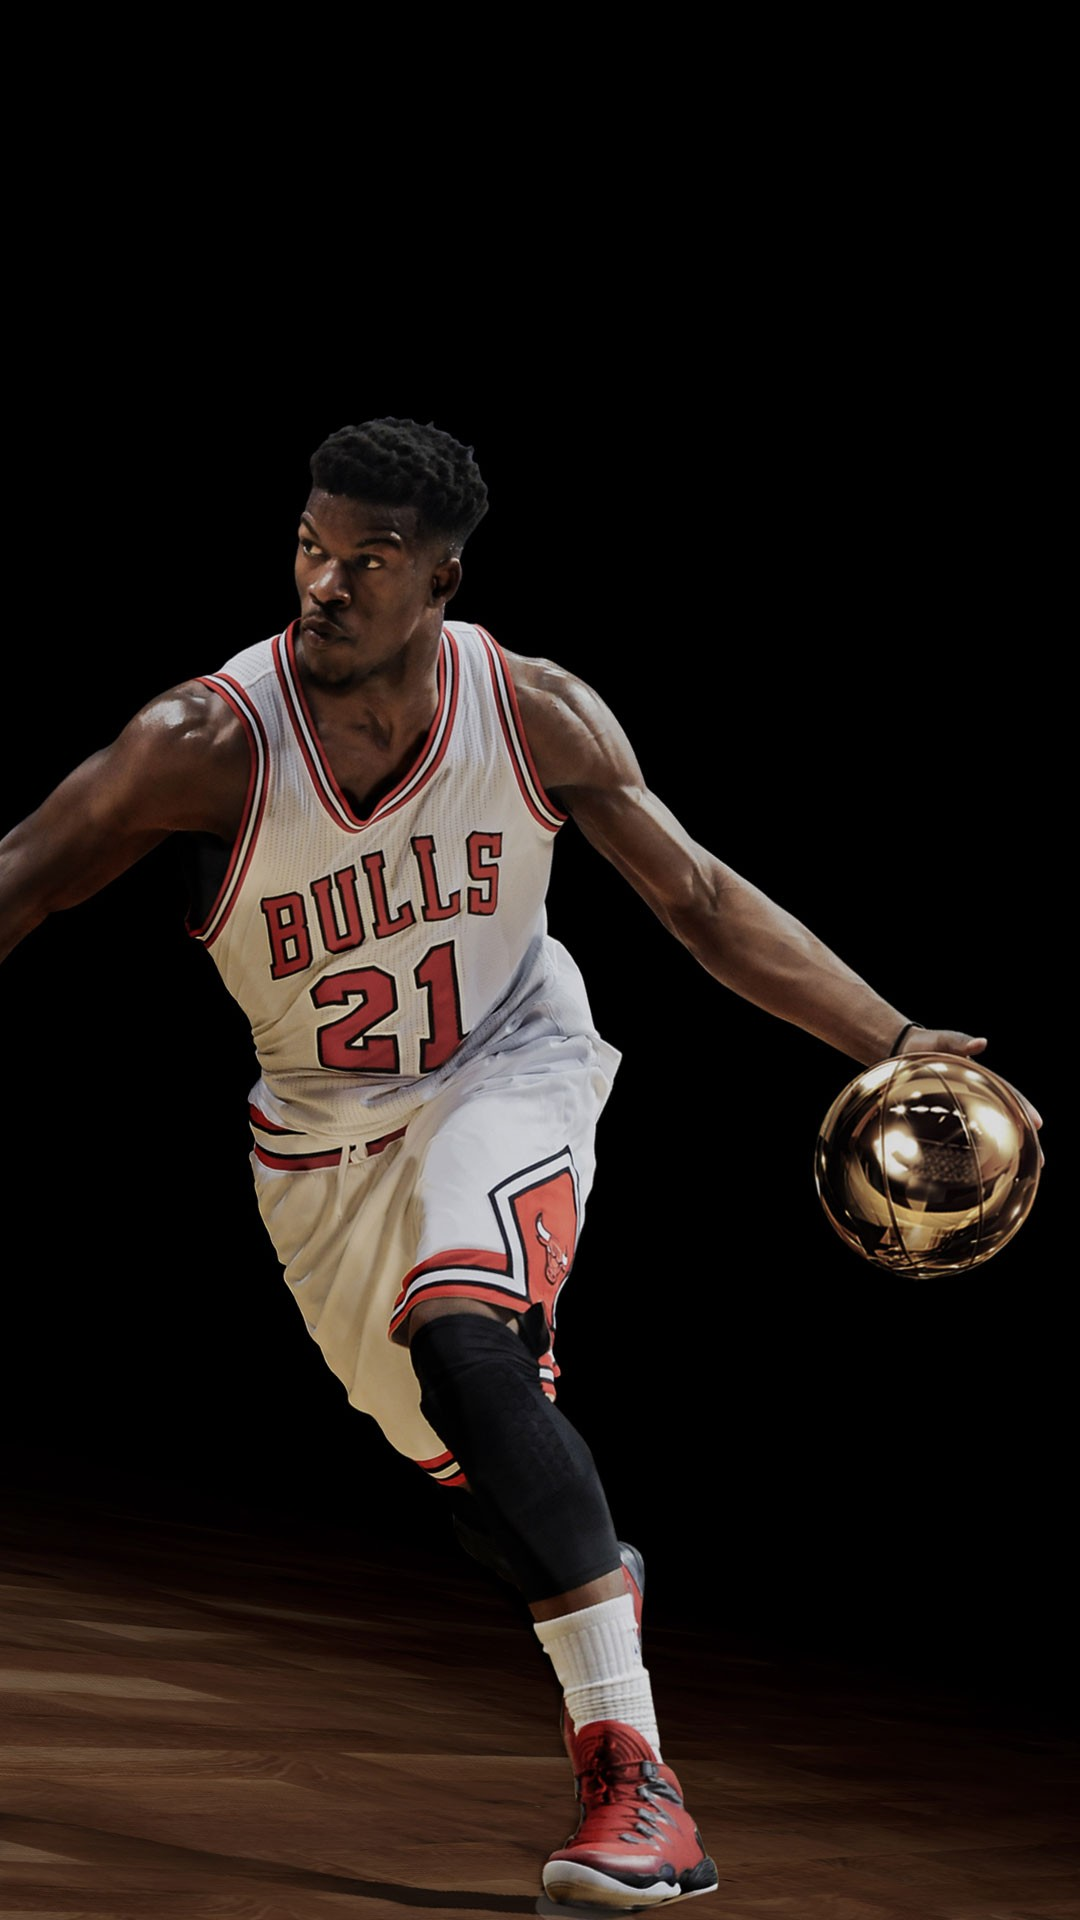 Chicago Bulls iPhone Backgrounds | PixelsTalk.Net |Jimmy Butler Dunk Wallpaper